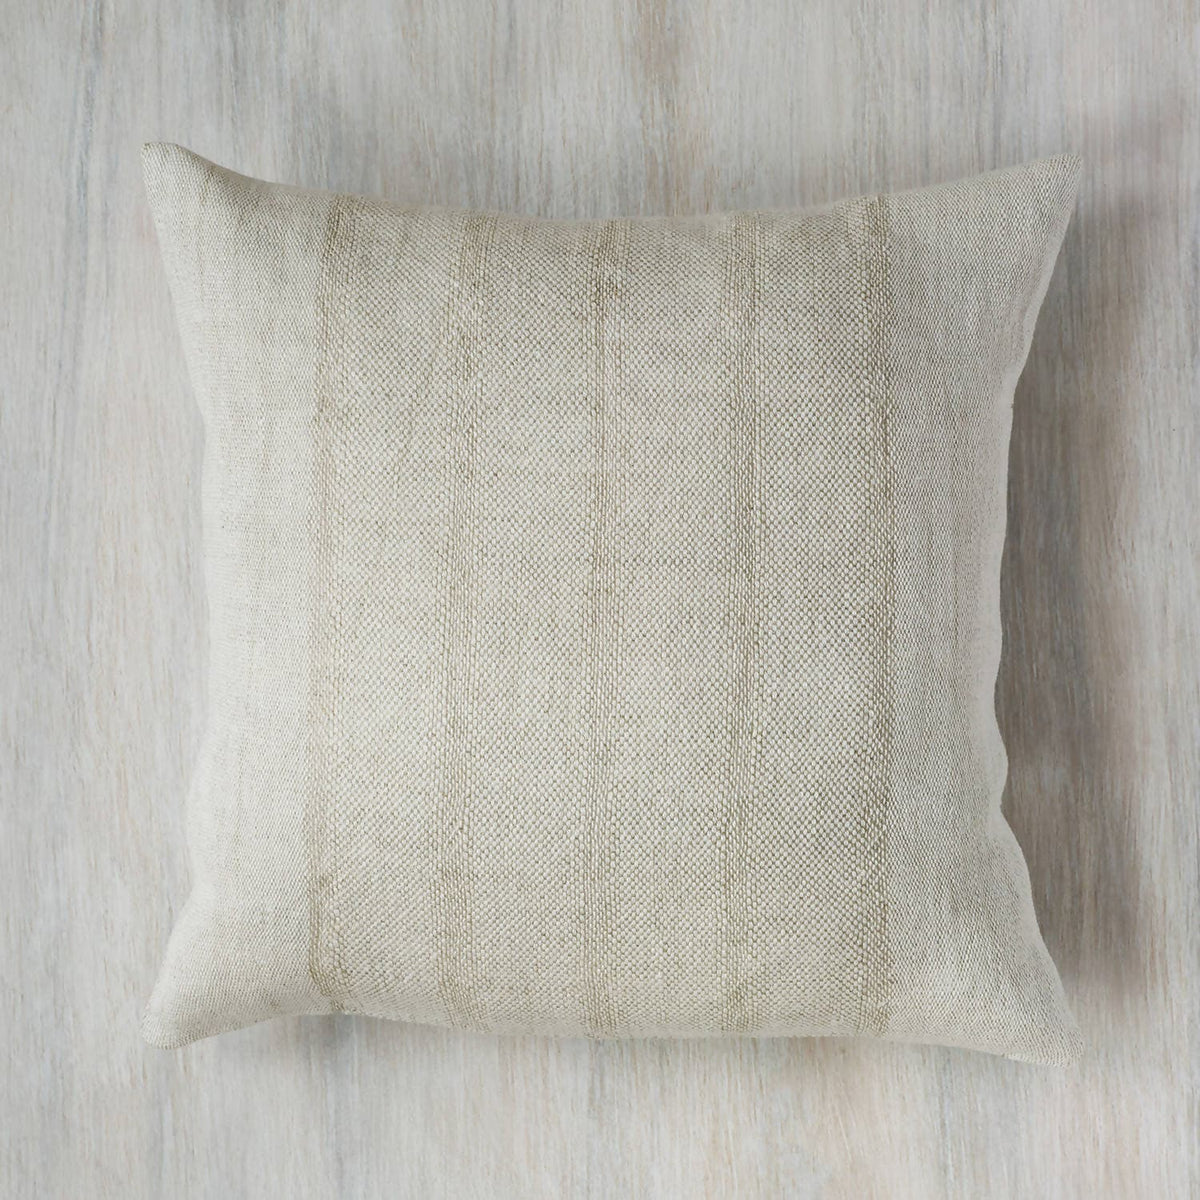 White Fretwork Handwoven Linen Pillow